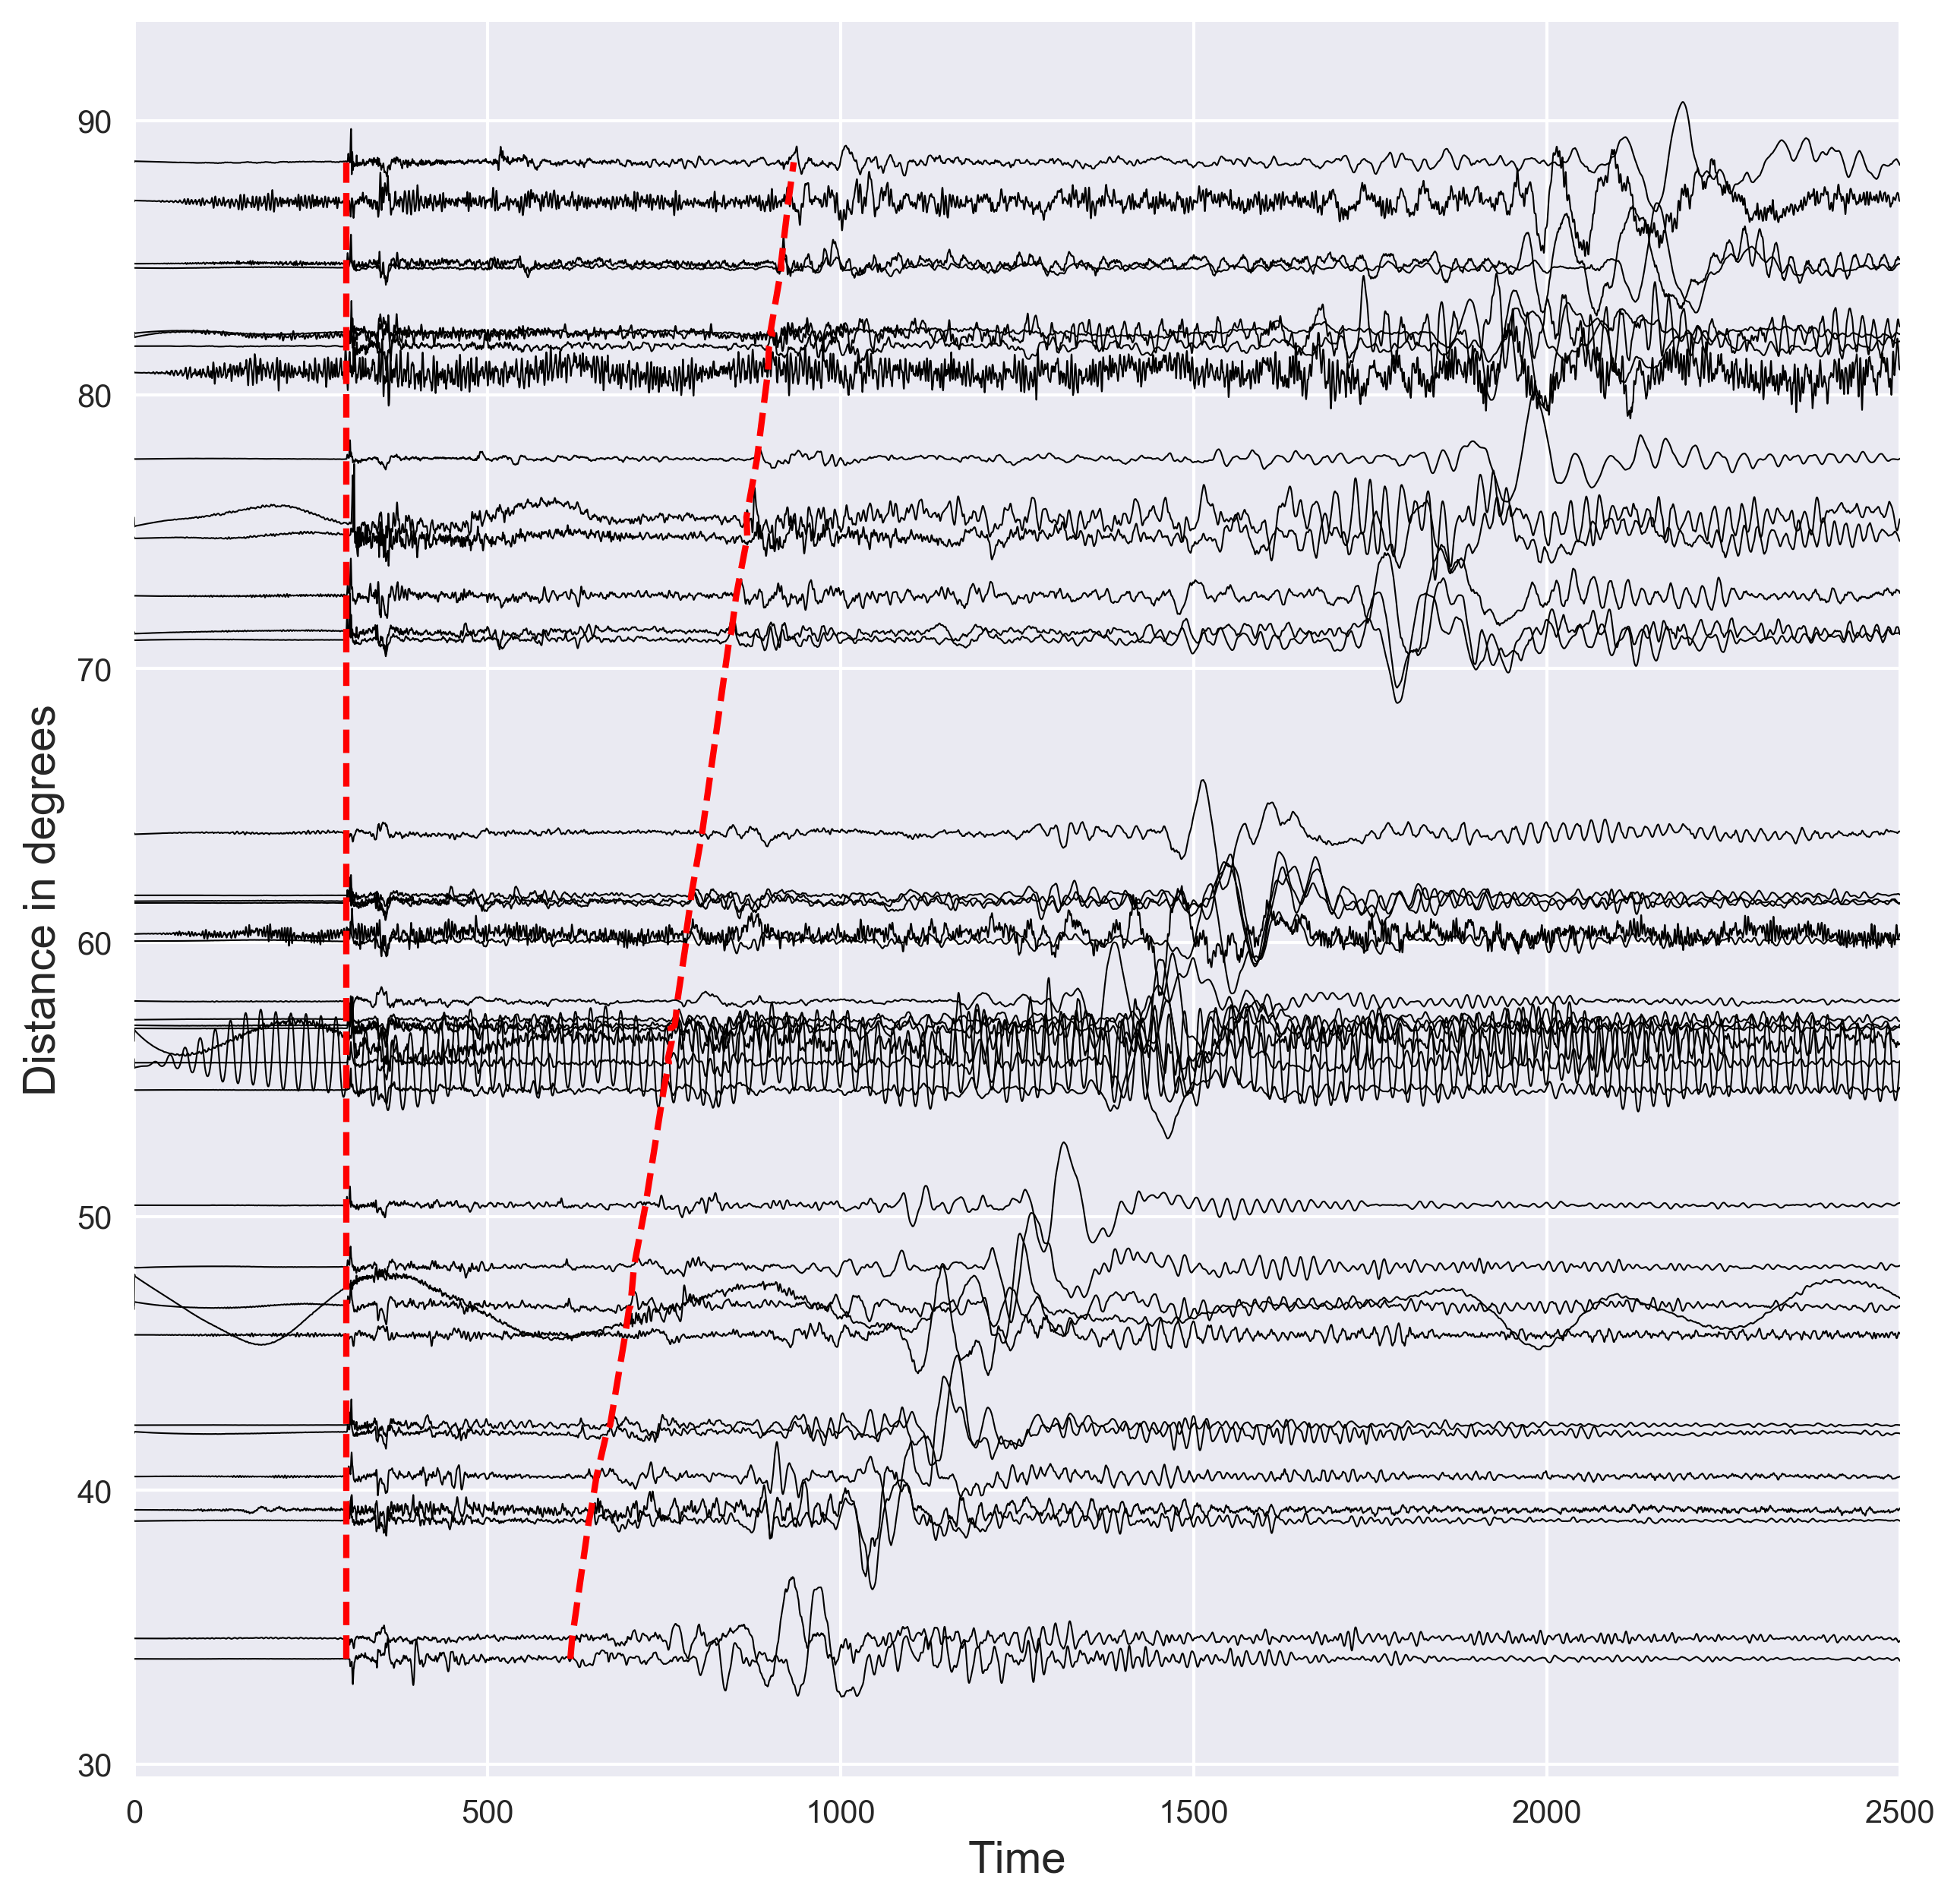 Plotting seismograms with increasing epicentral distance using python (codes included)